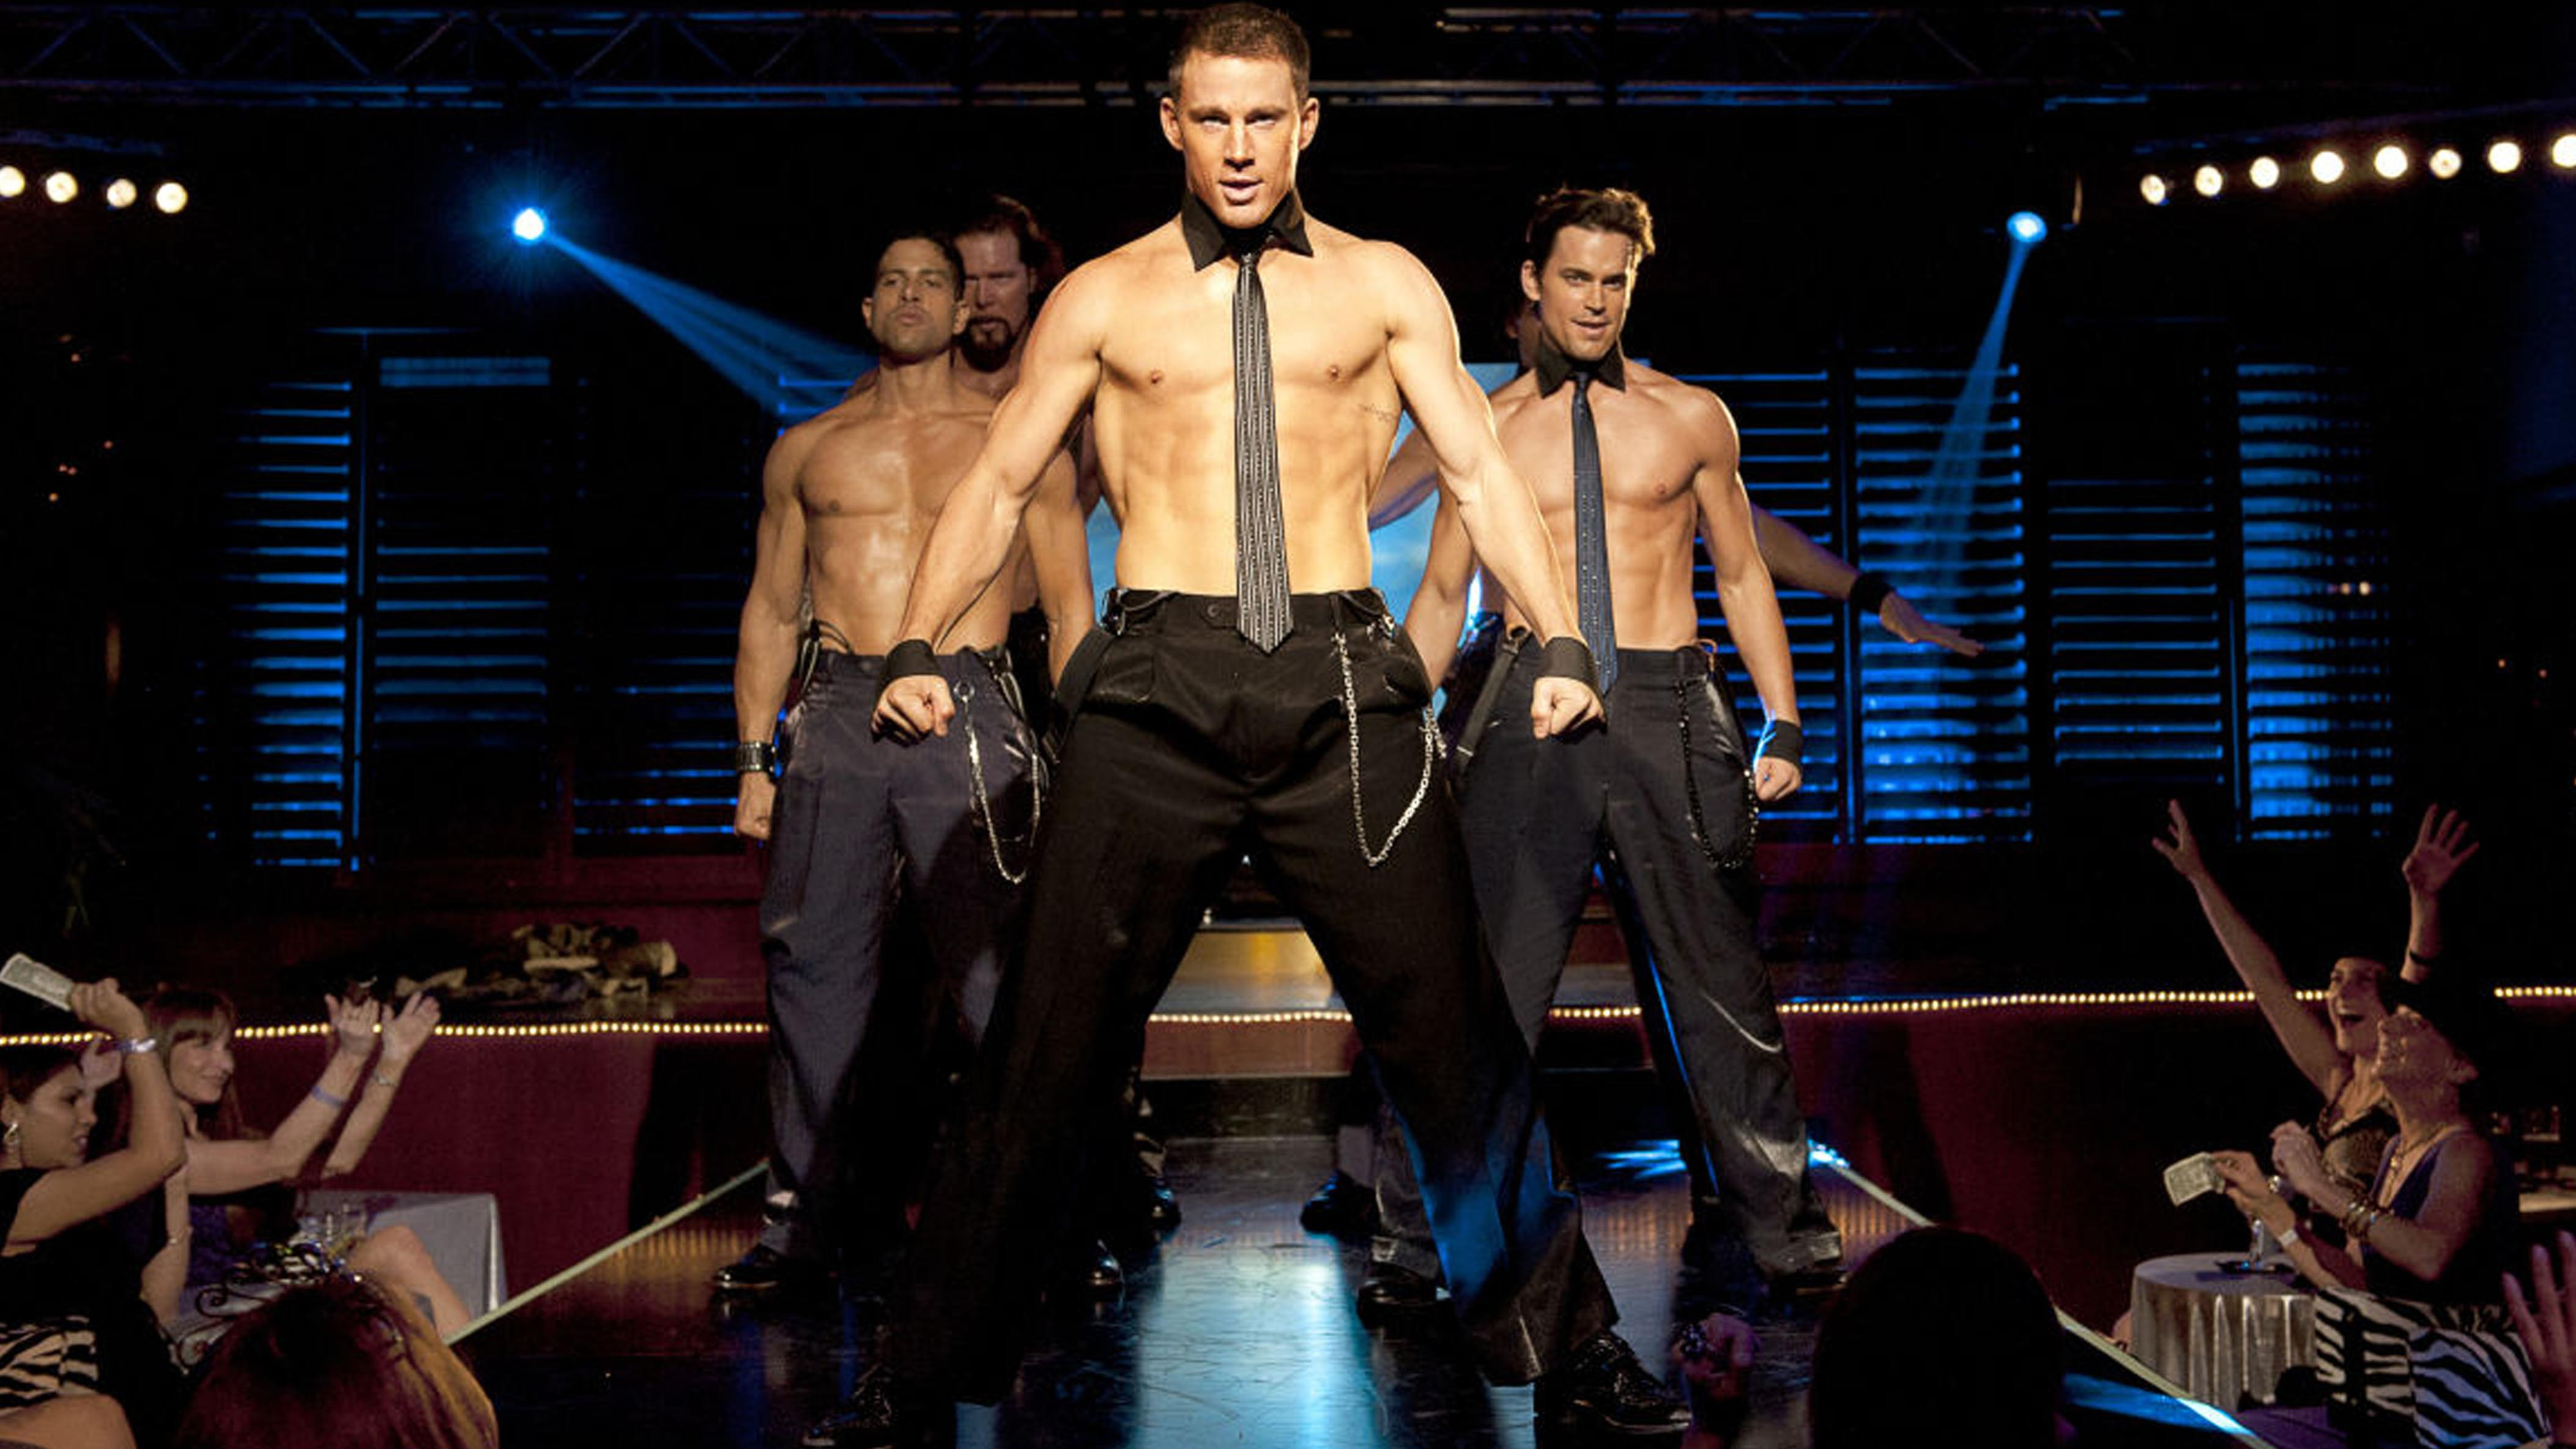 A night with the oiled hunks of Magic Mike